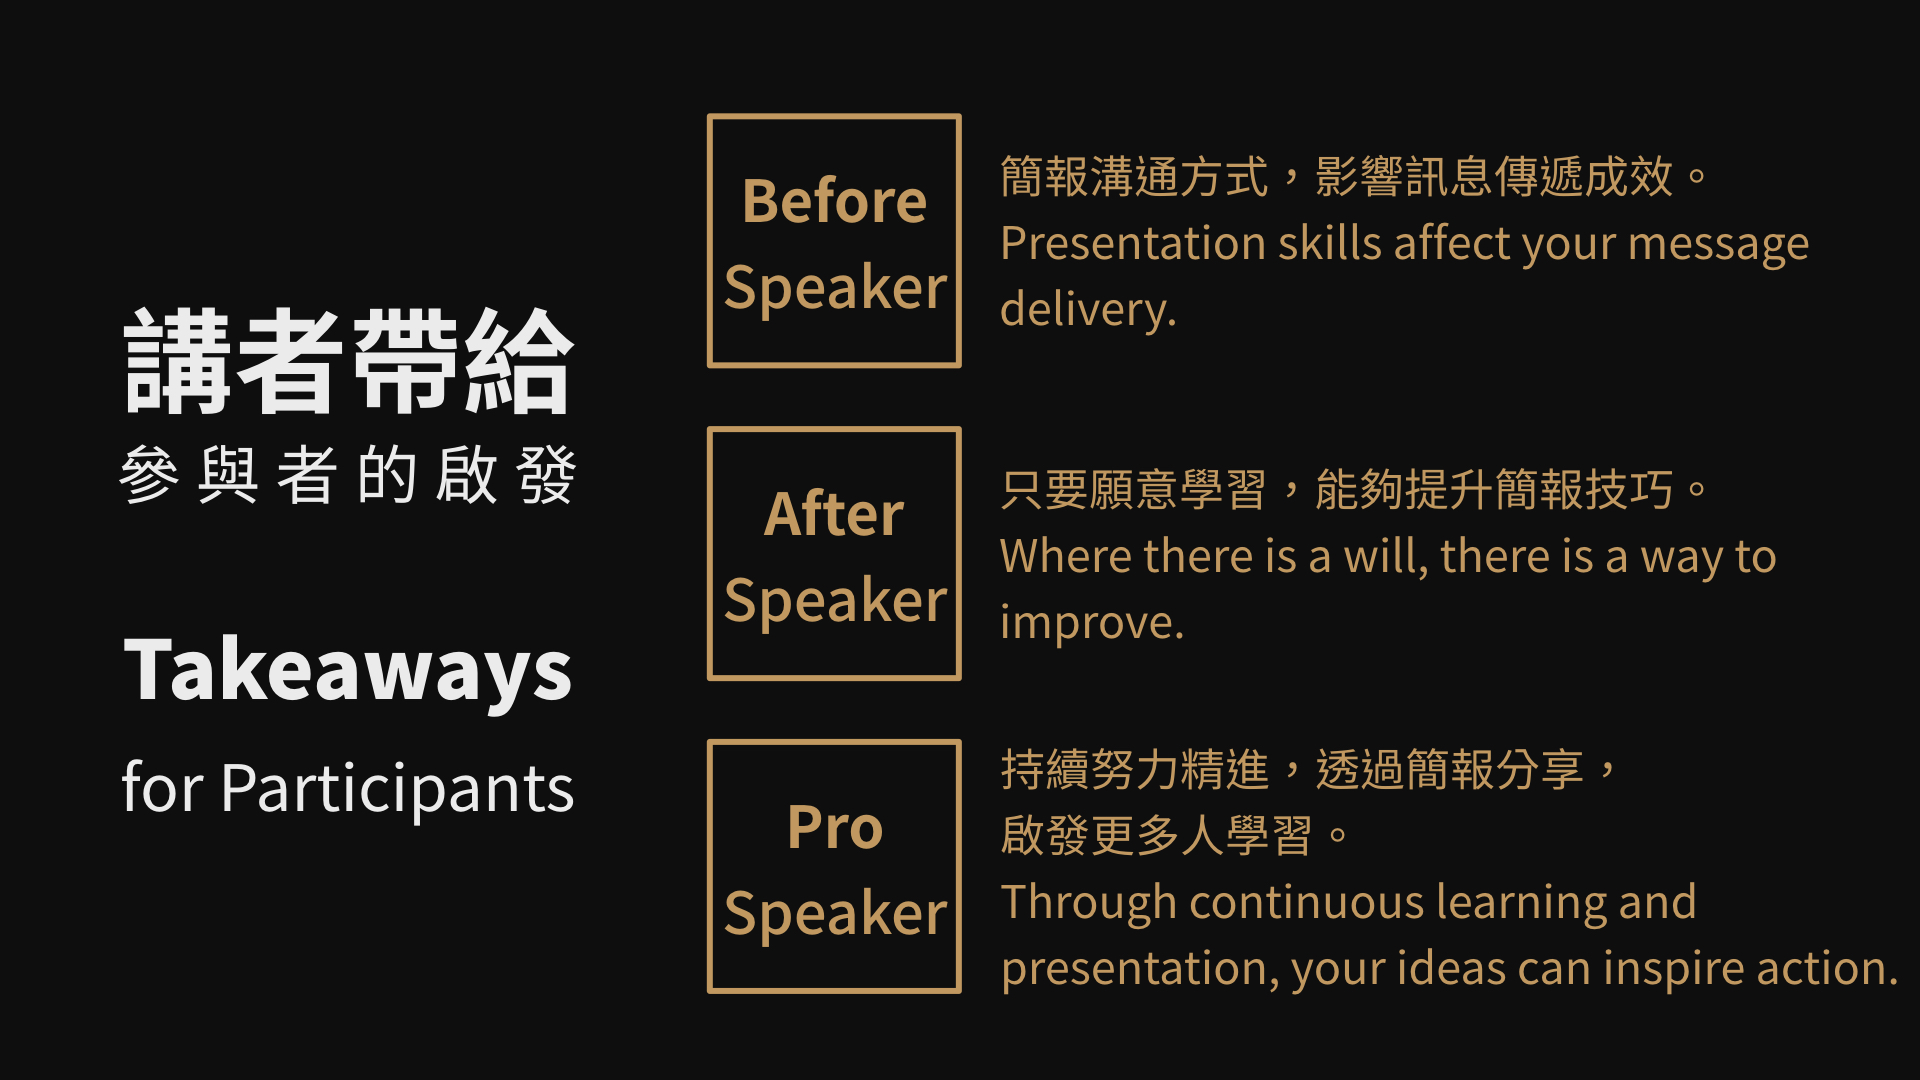 Takeaways for participants.jpeg